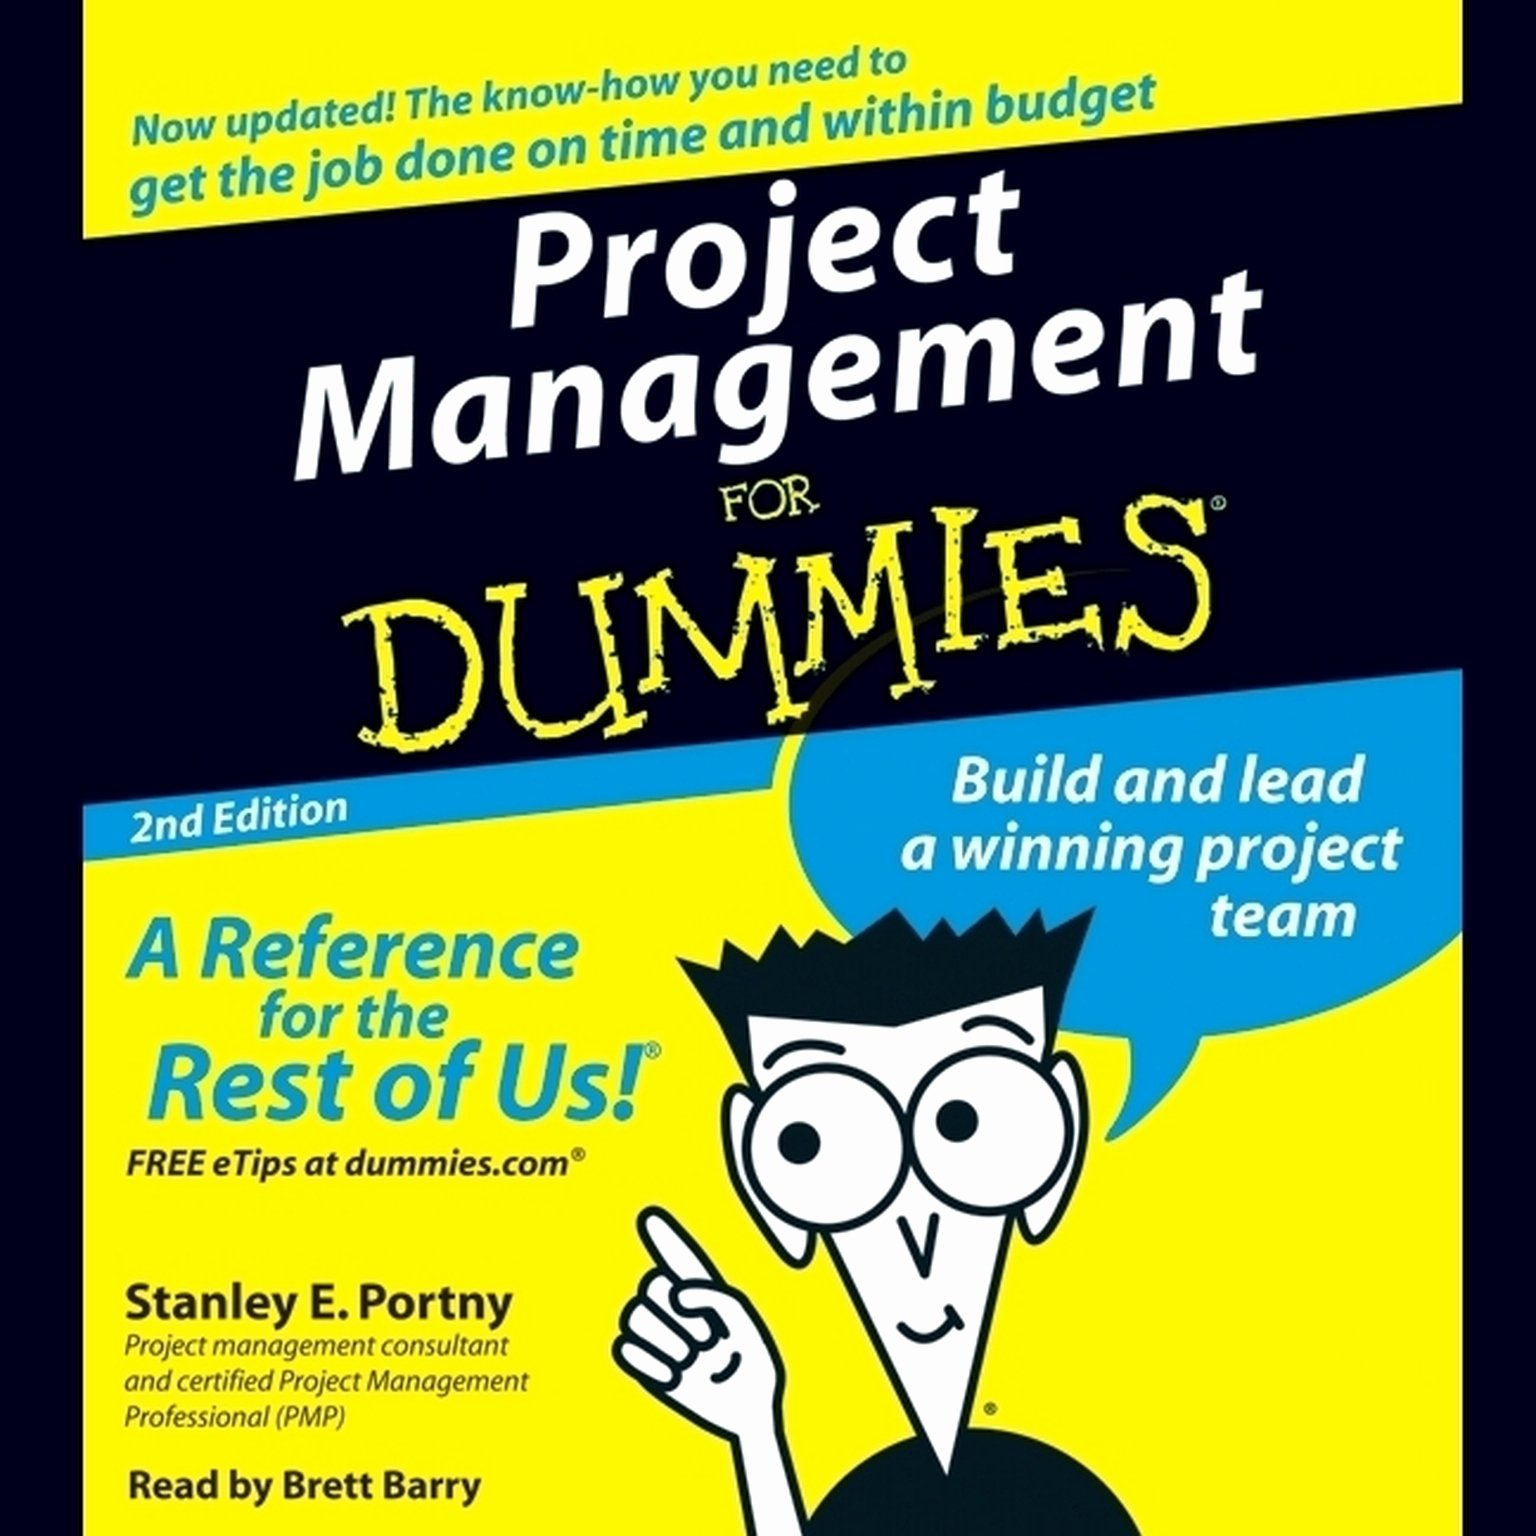 Book for Dummies Template Beautiful Project Management Checklists for Dummies Ebook Nick